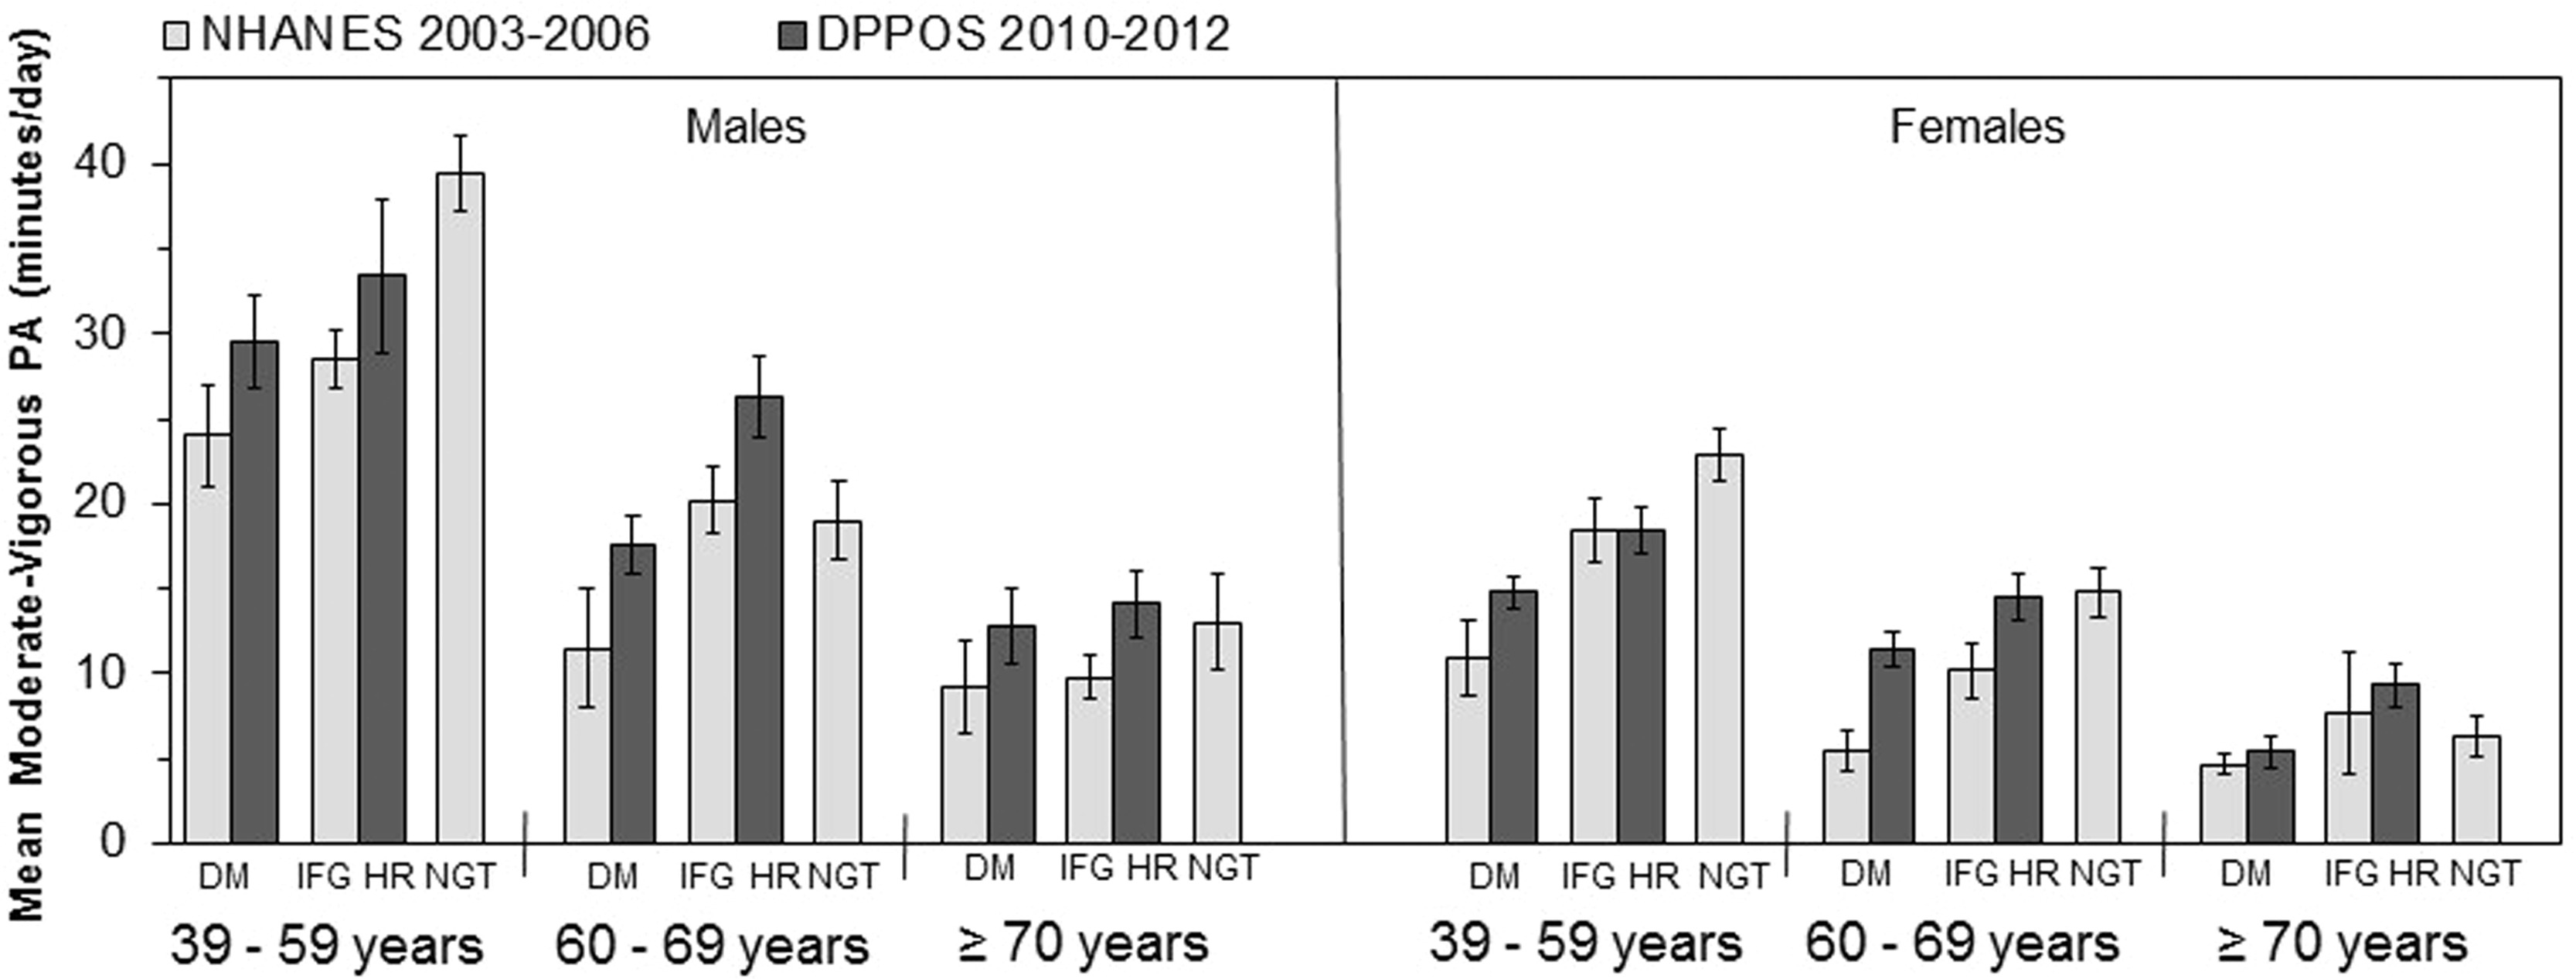 Activity and Sedentary Time 10 Years After a Successful